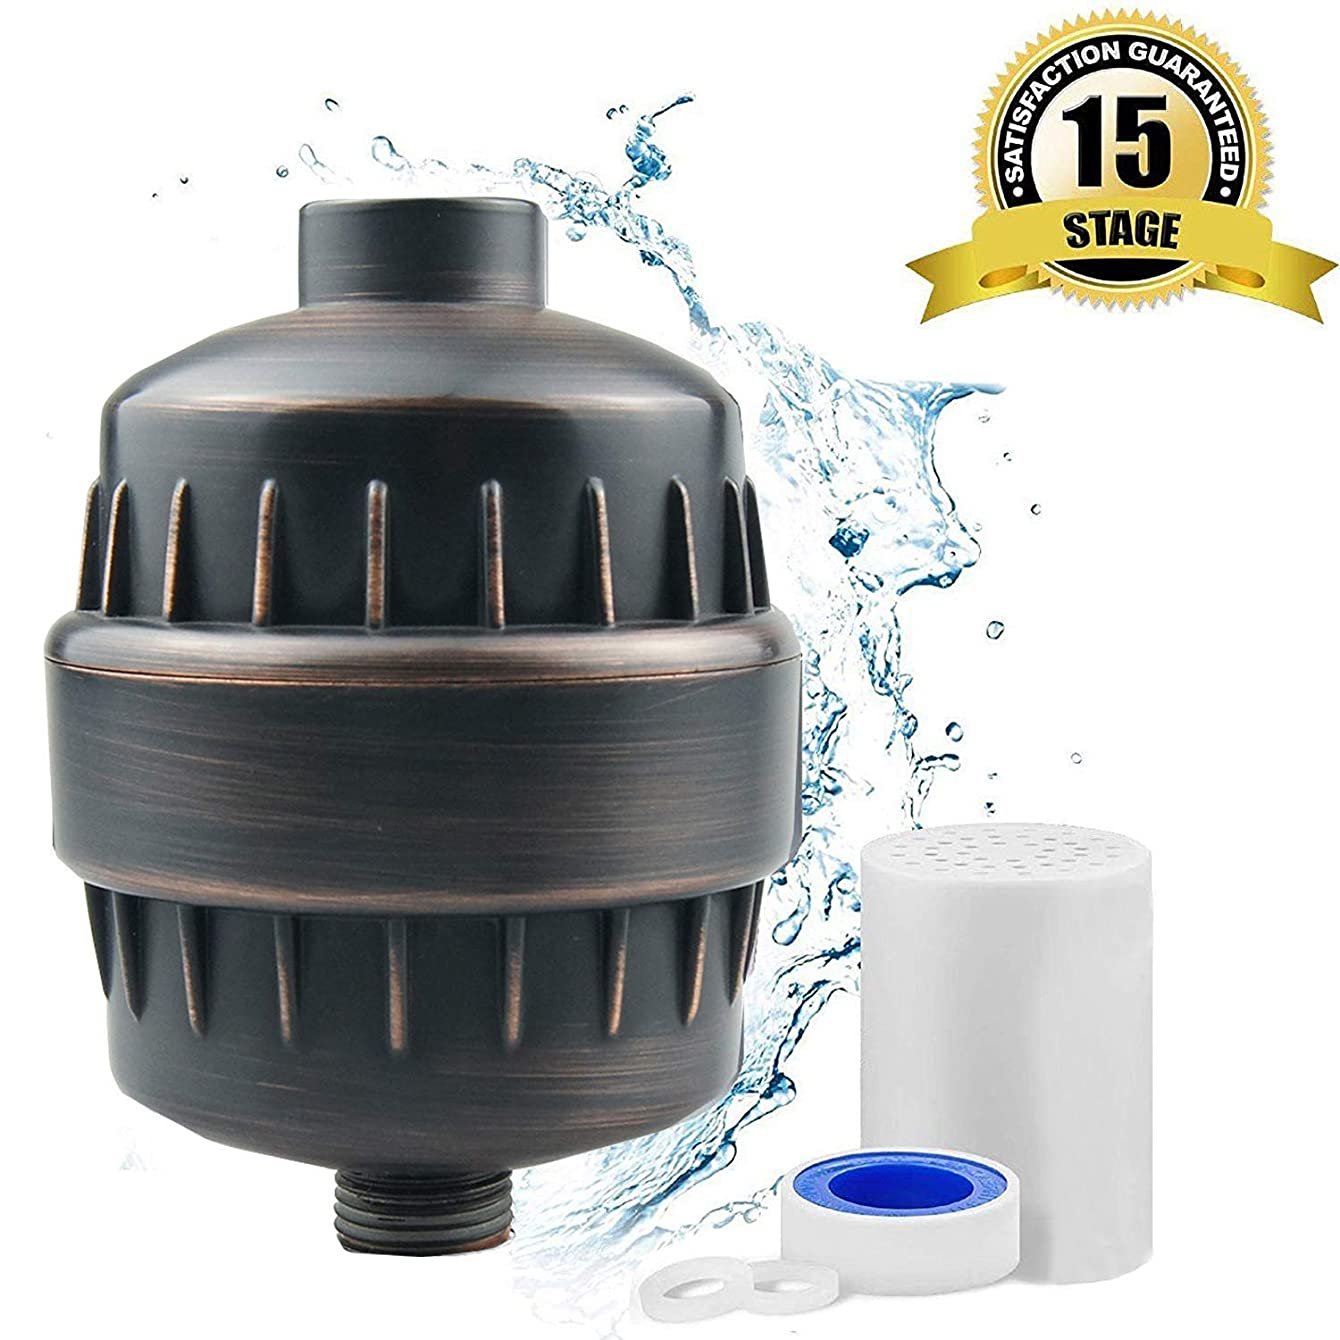 KuRail 15 stage High Output Shower Filter,Universal Oil Rubbed Bronze Shower Head Filter,Water Softener with Free Teflon Tape